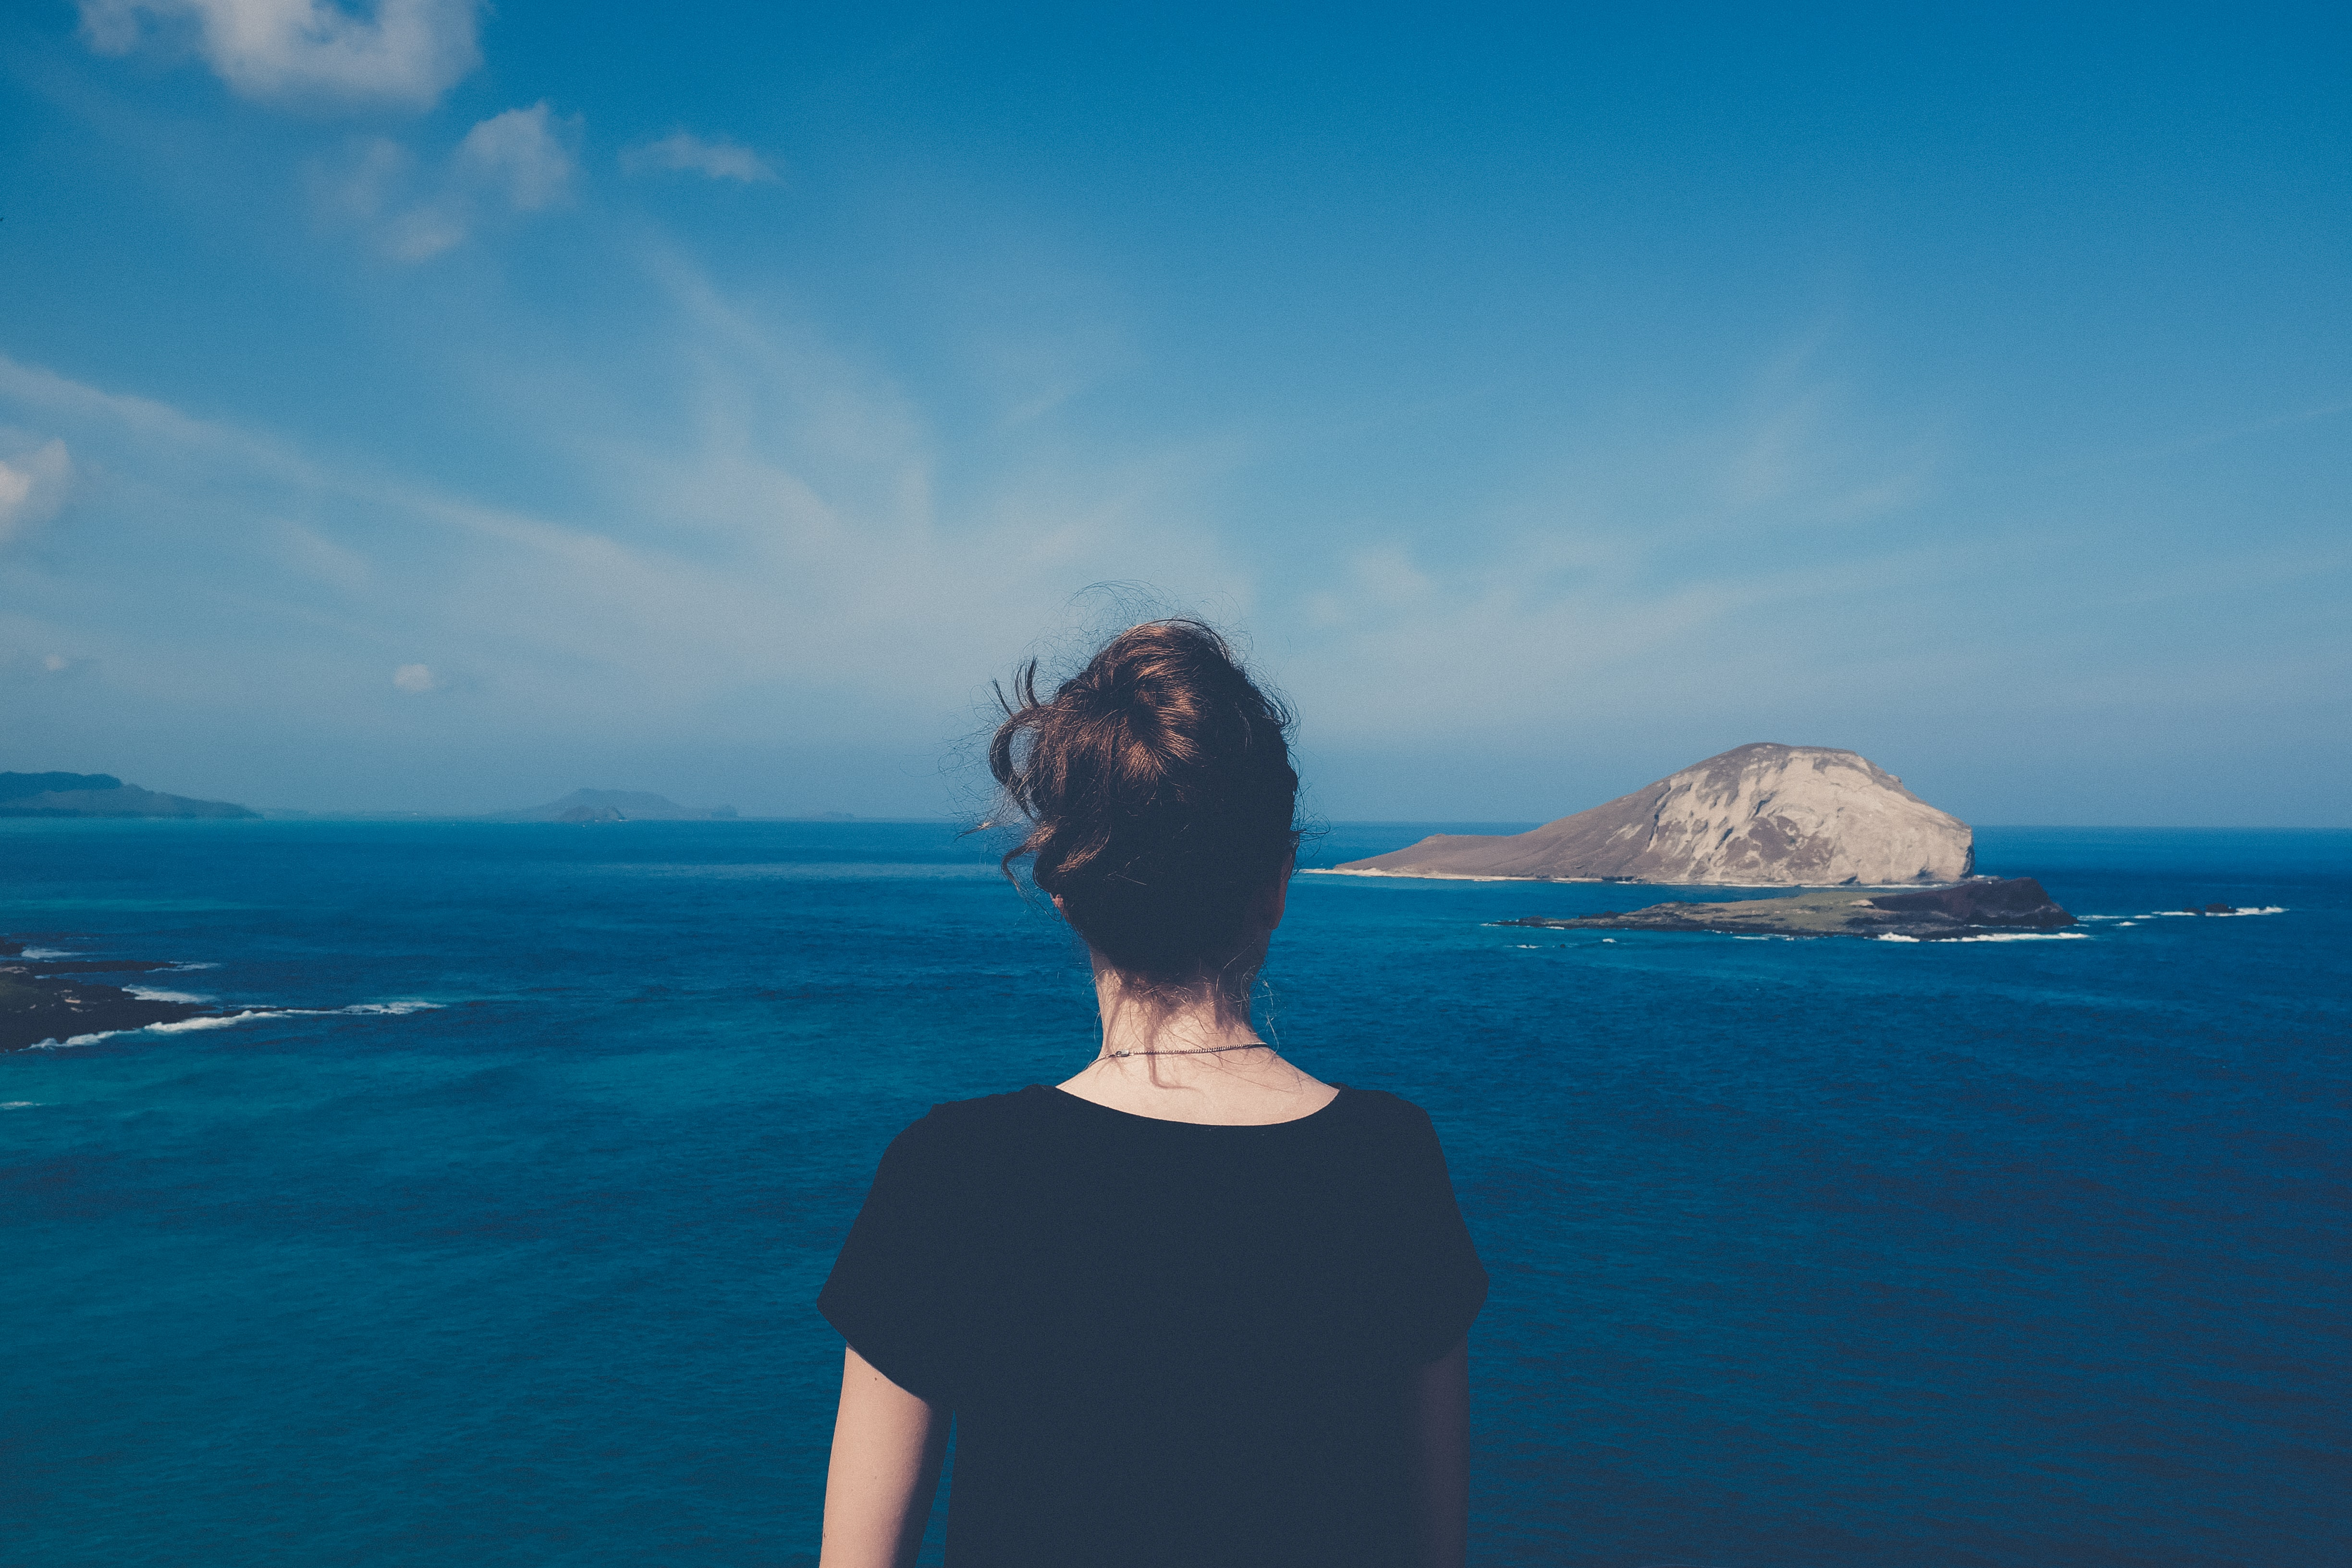 A woman standing in front of a sea of water with a rocky island in O'ahu